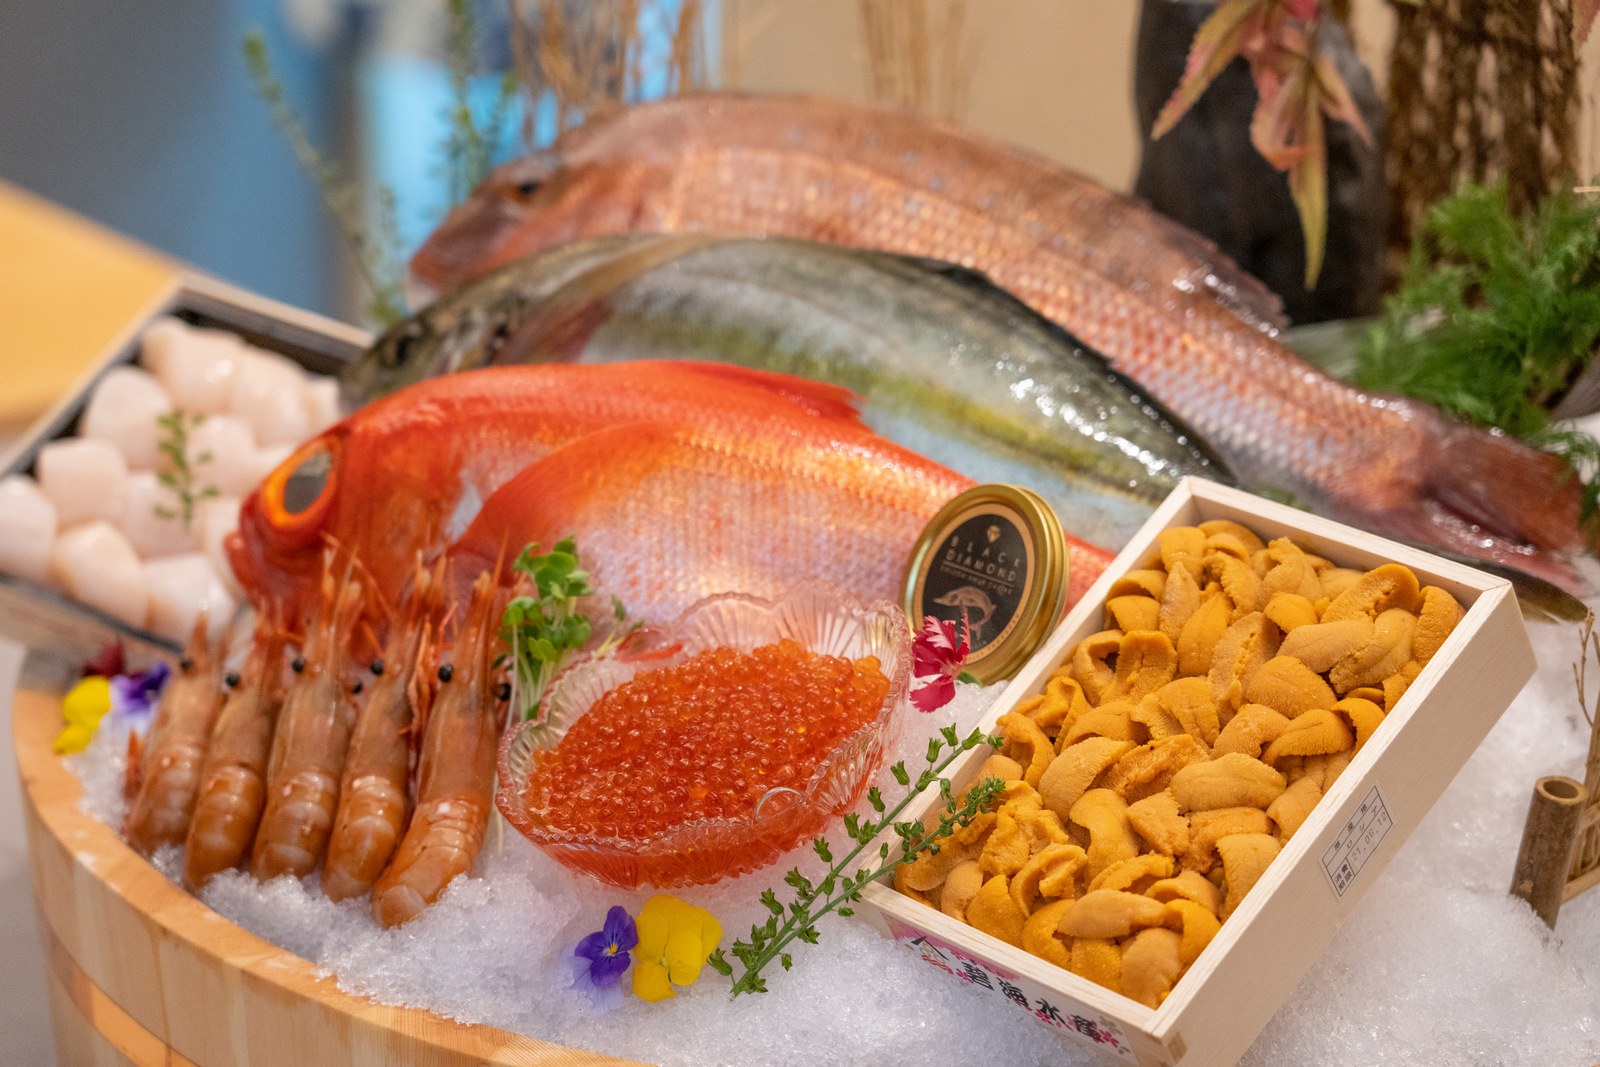 juugatsu ten, sri petaling: a premium omakase experience, in the restaurant or at home